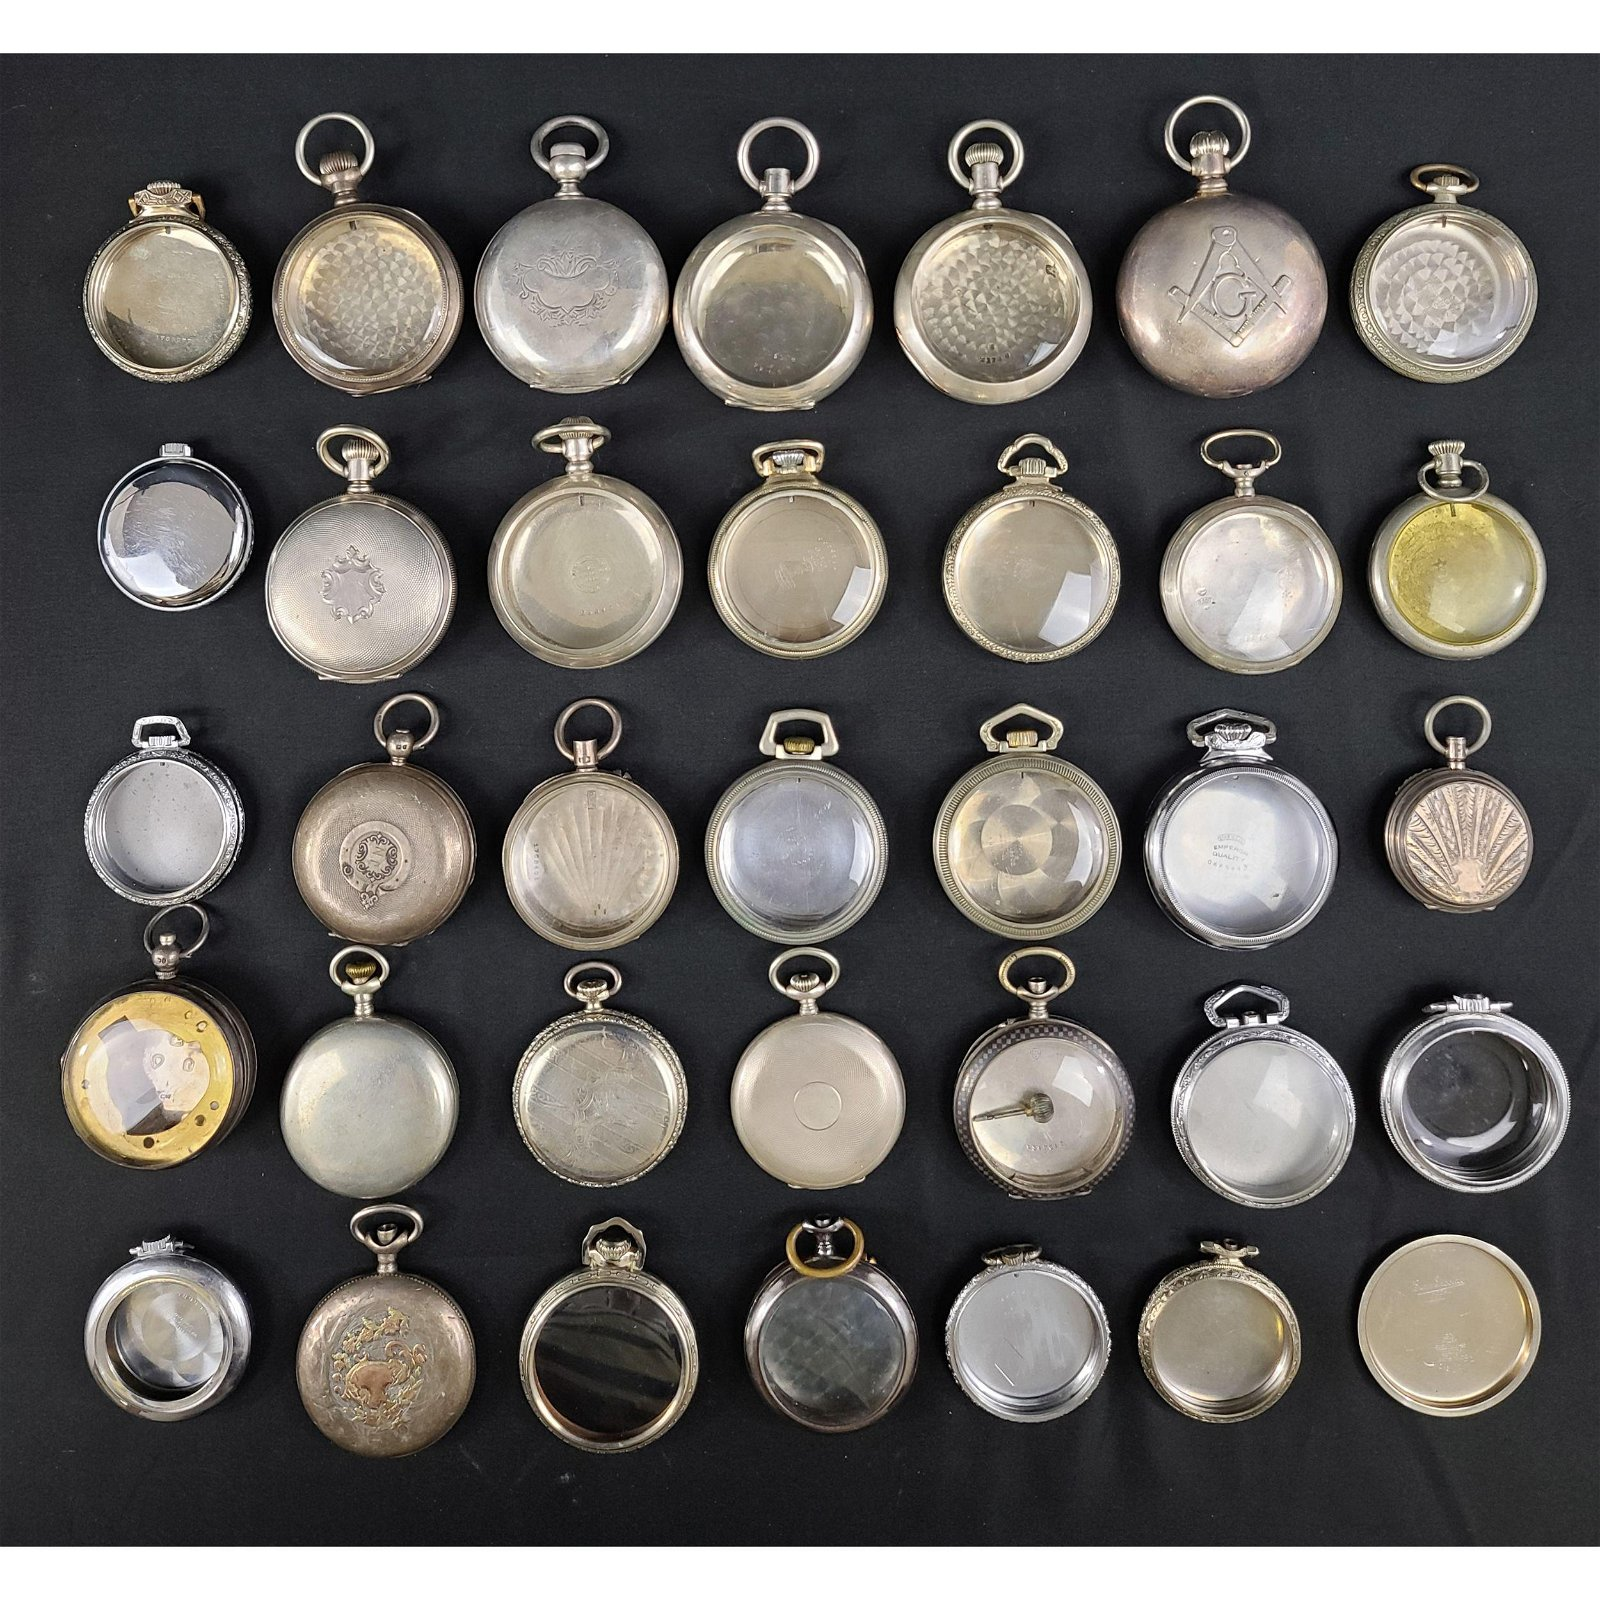 Lot 35 Sterling, Coin & Plated Silver Pocket Watch Case